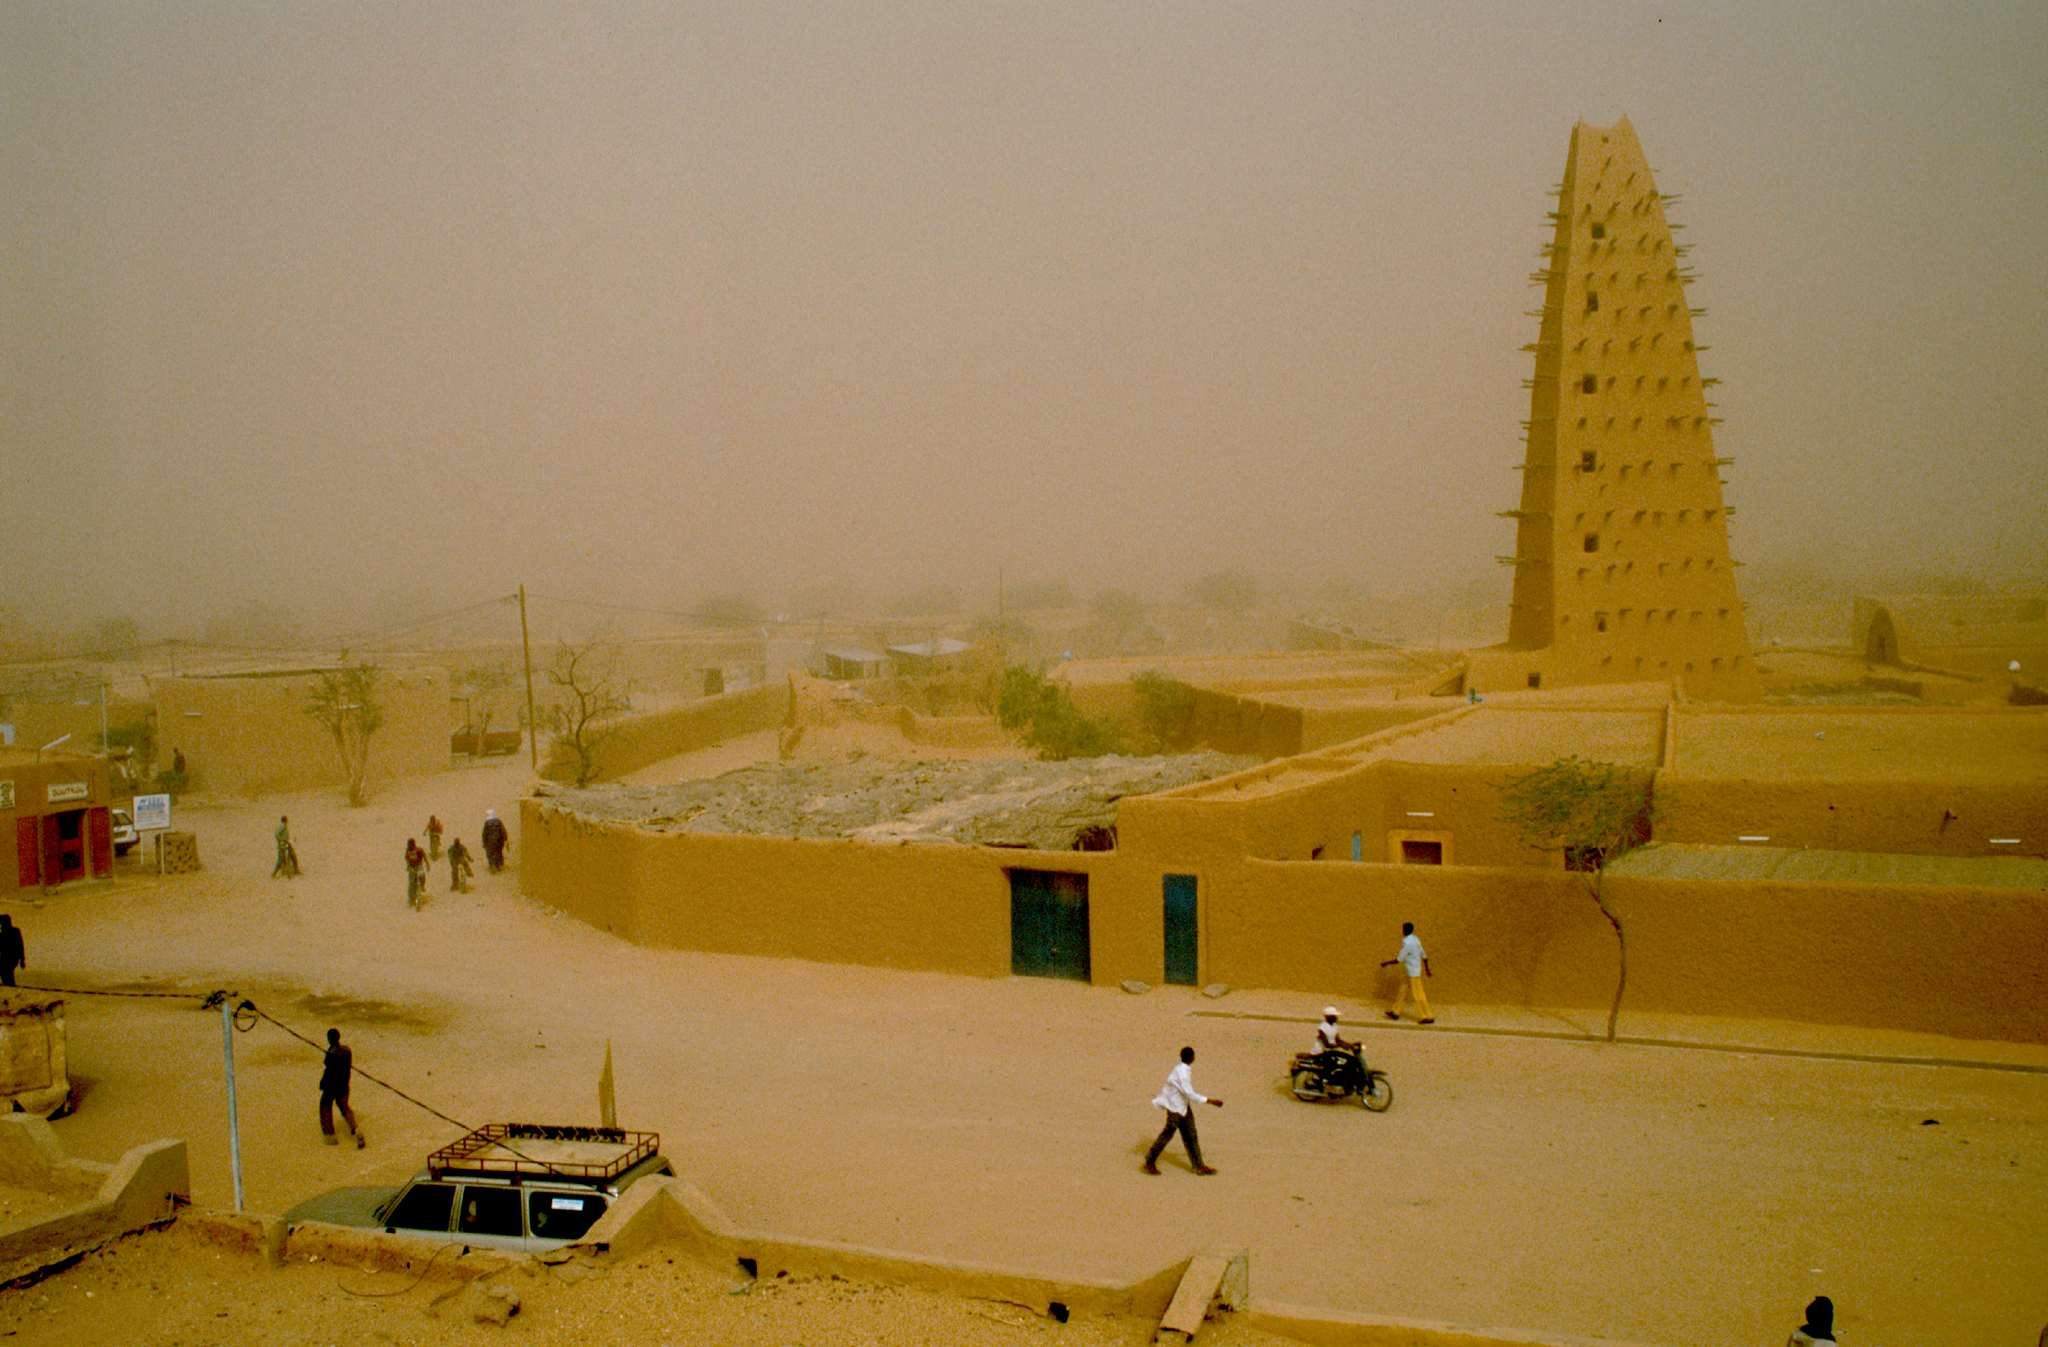 Mosque in Agadez